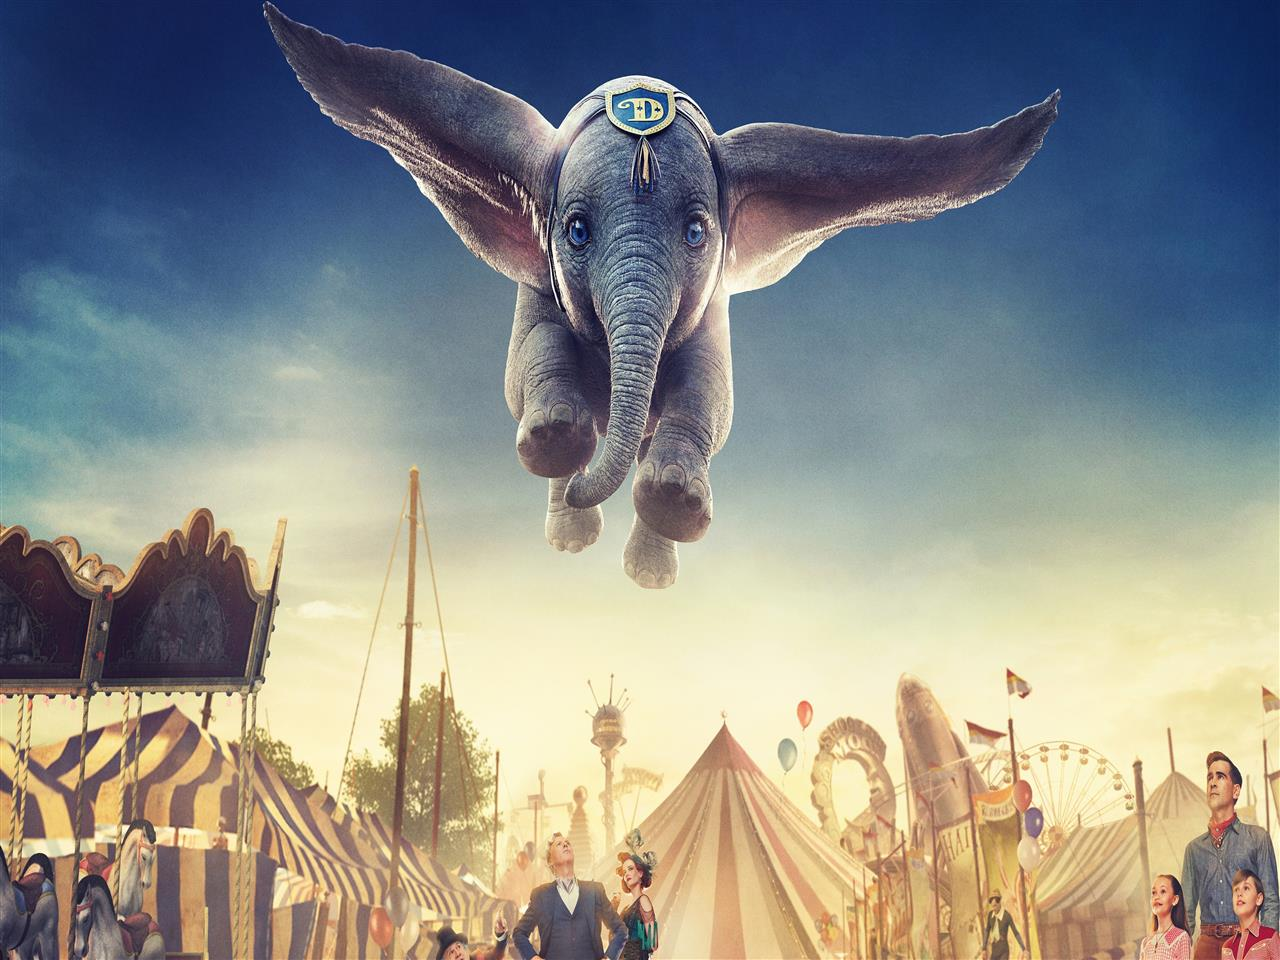 1280x960 5K Wallpaper of 2019 Dumbo Animation Film